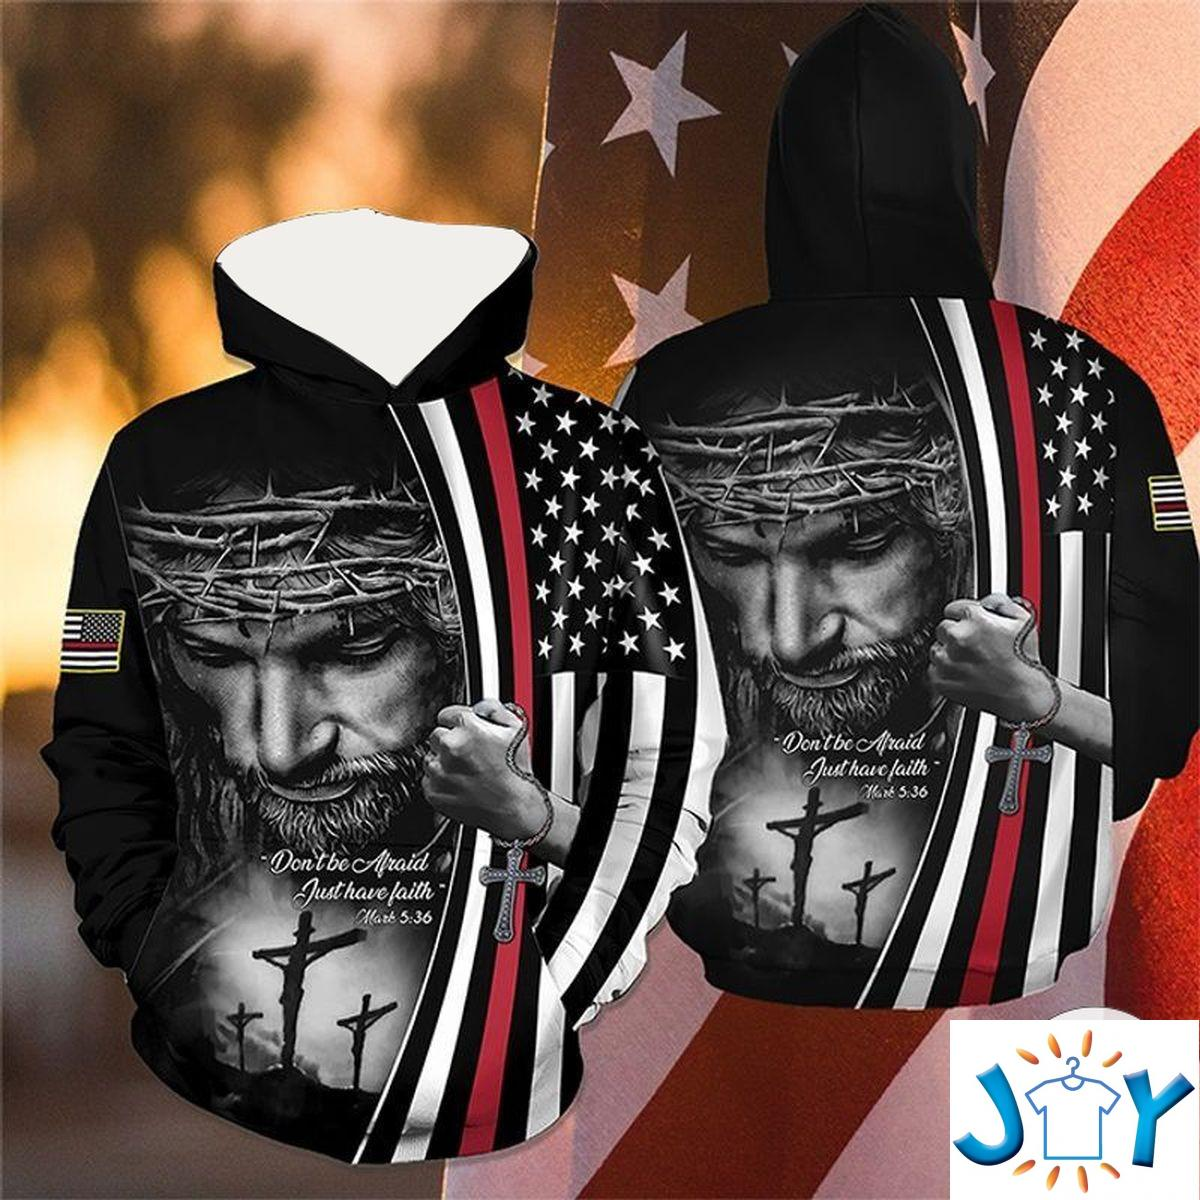 Jesus Don't Be Afraid Just Have Faith The Thin Red Line 3D Hoodie